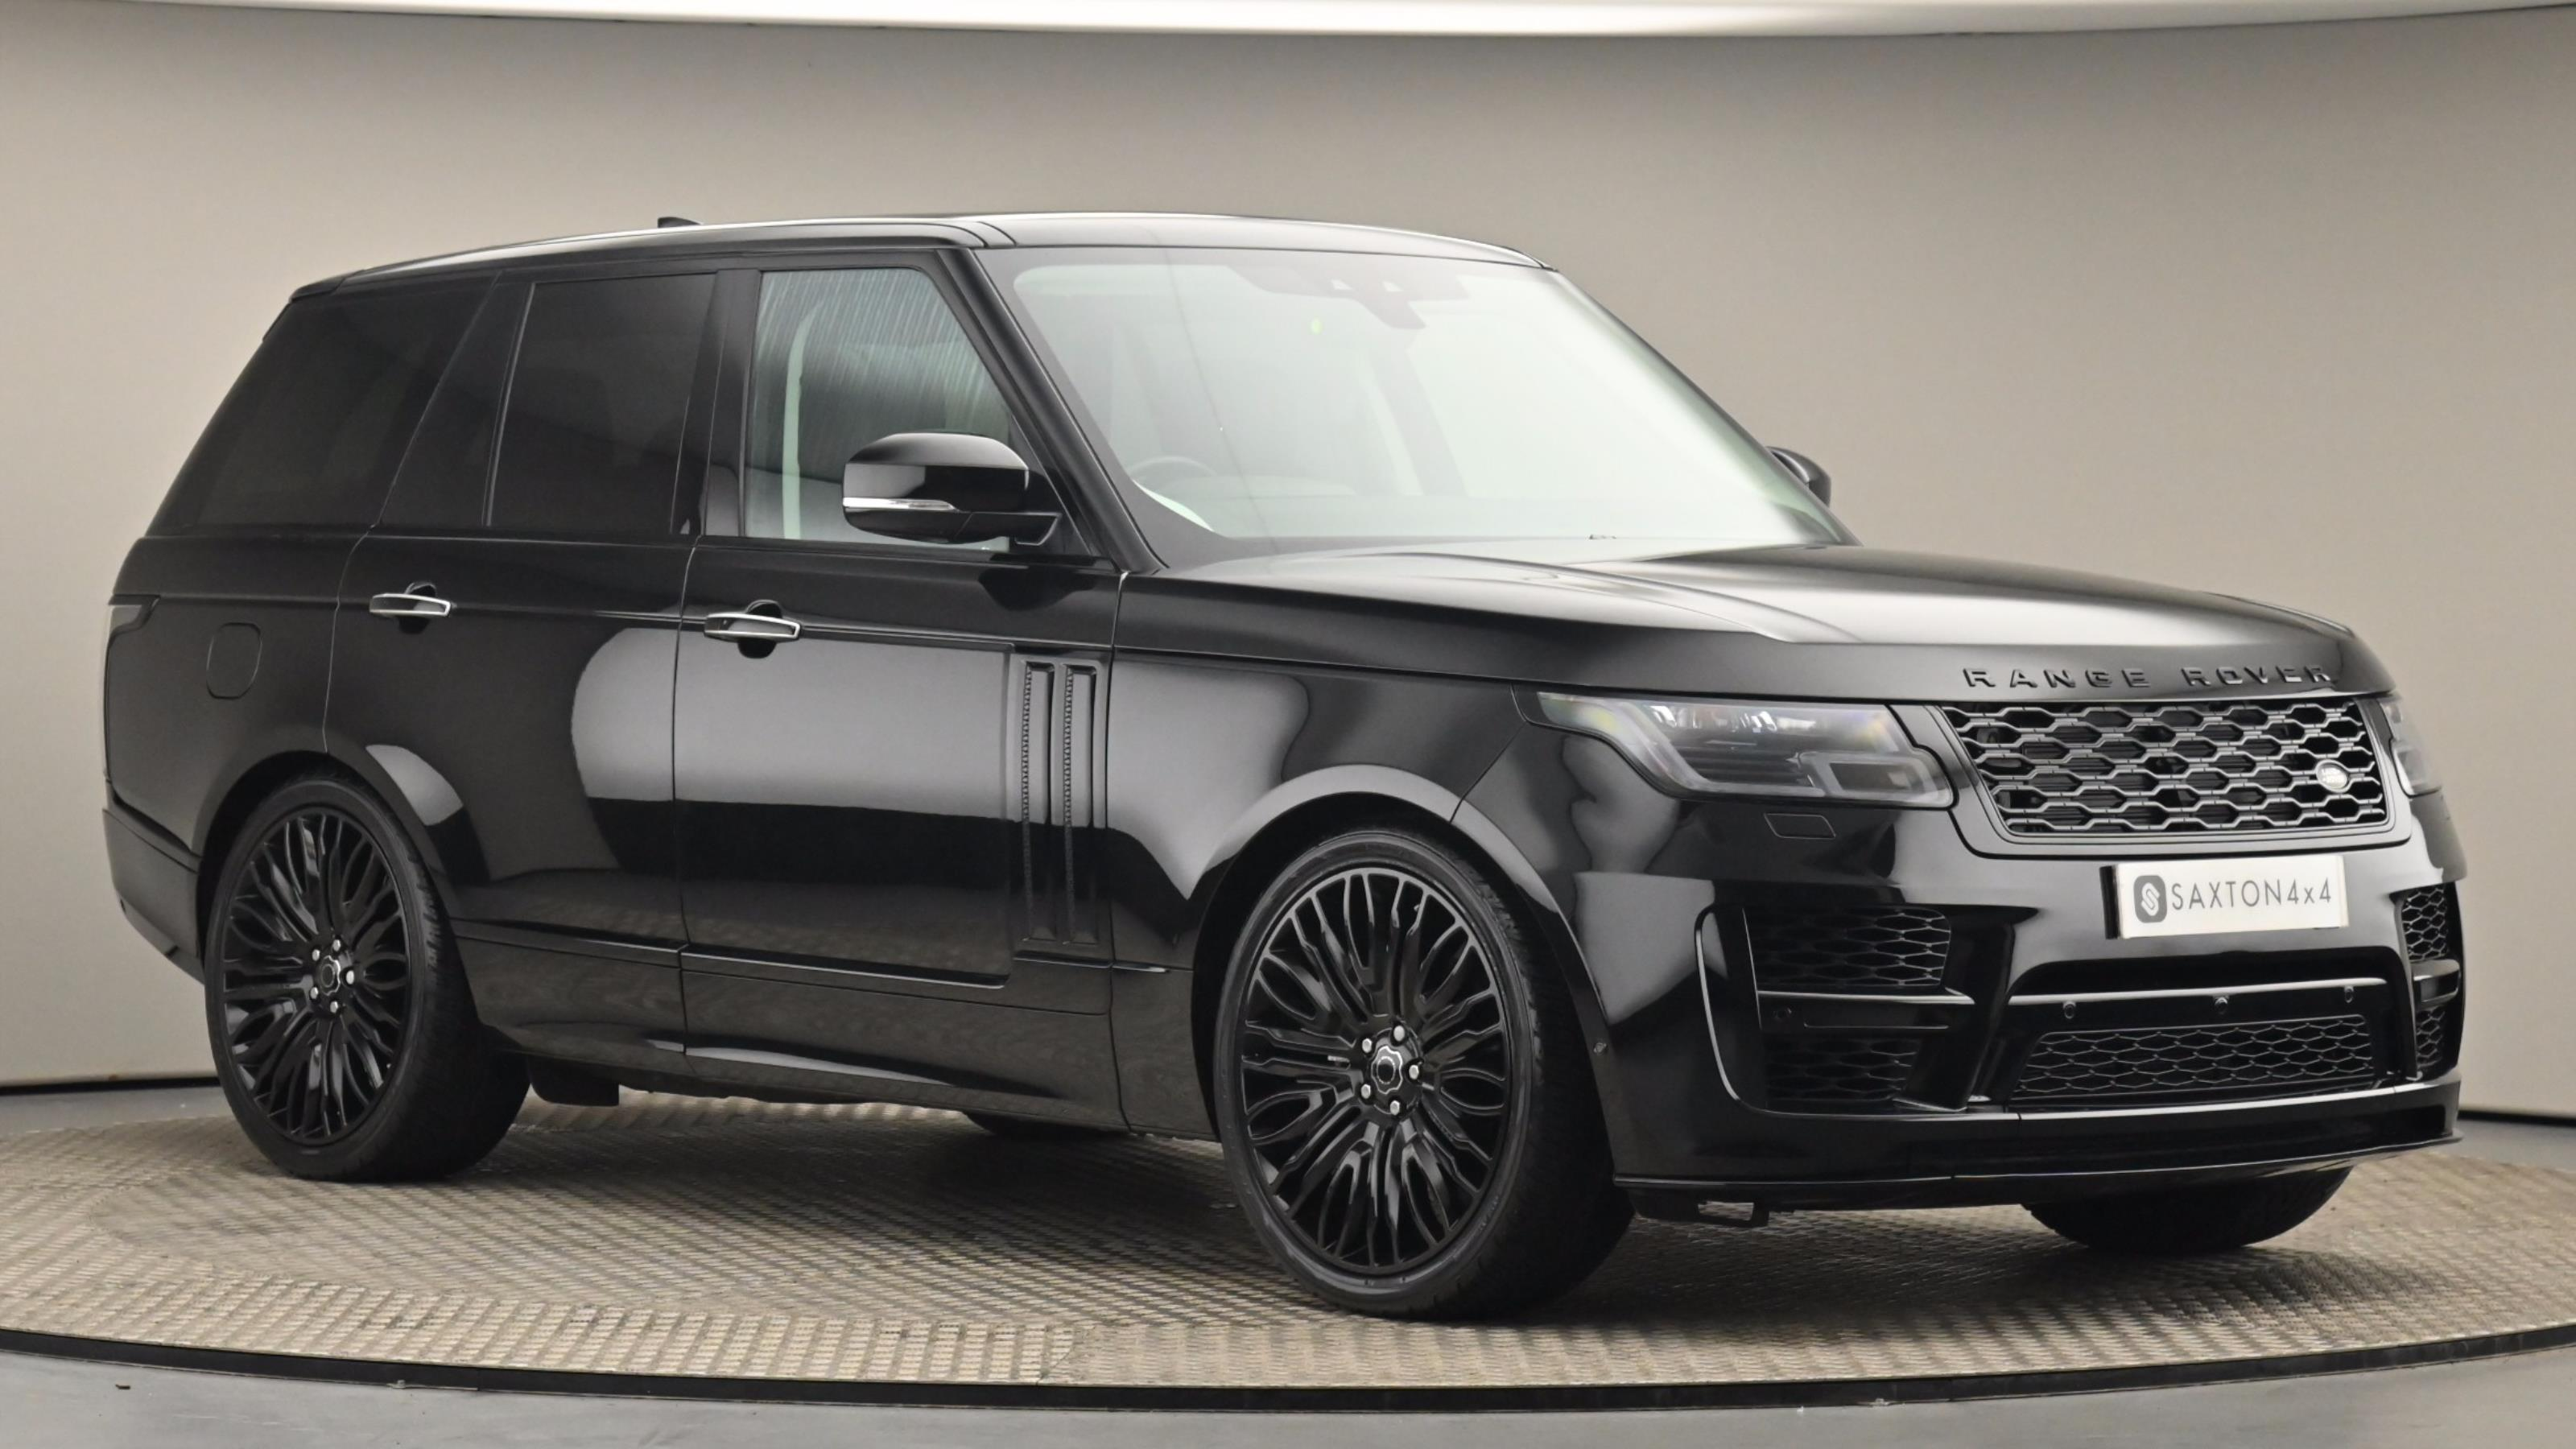 Used 2019 Land Rover RANGE ROVER 3.0 SDV6 Vogue SE 4dr Auto BLACK at Saxton4x4